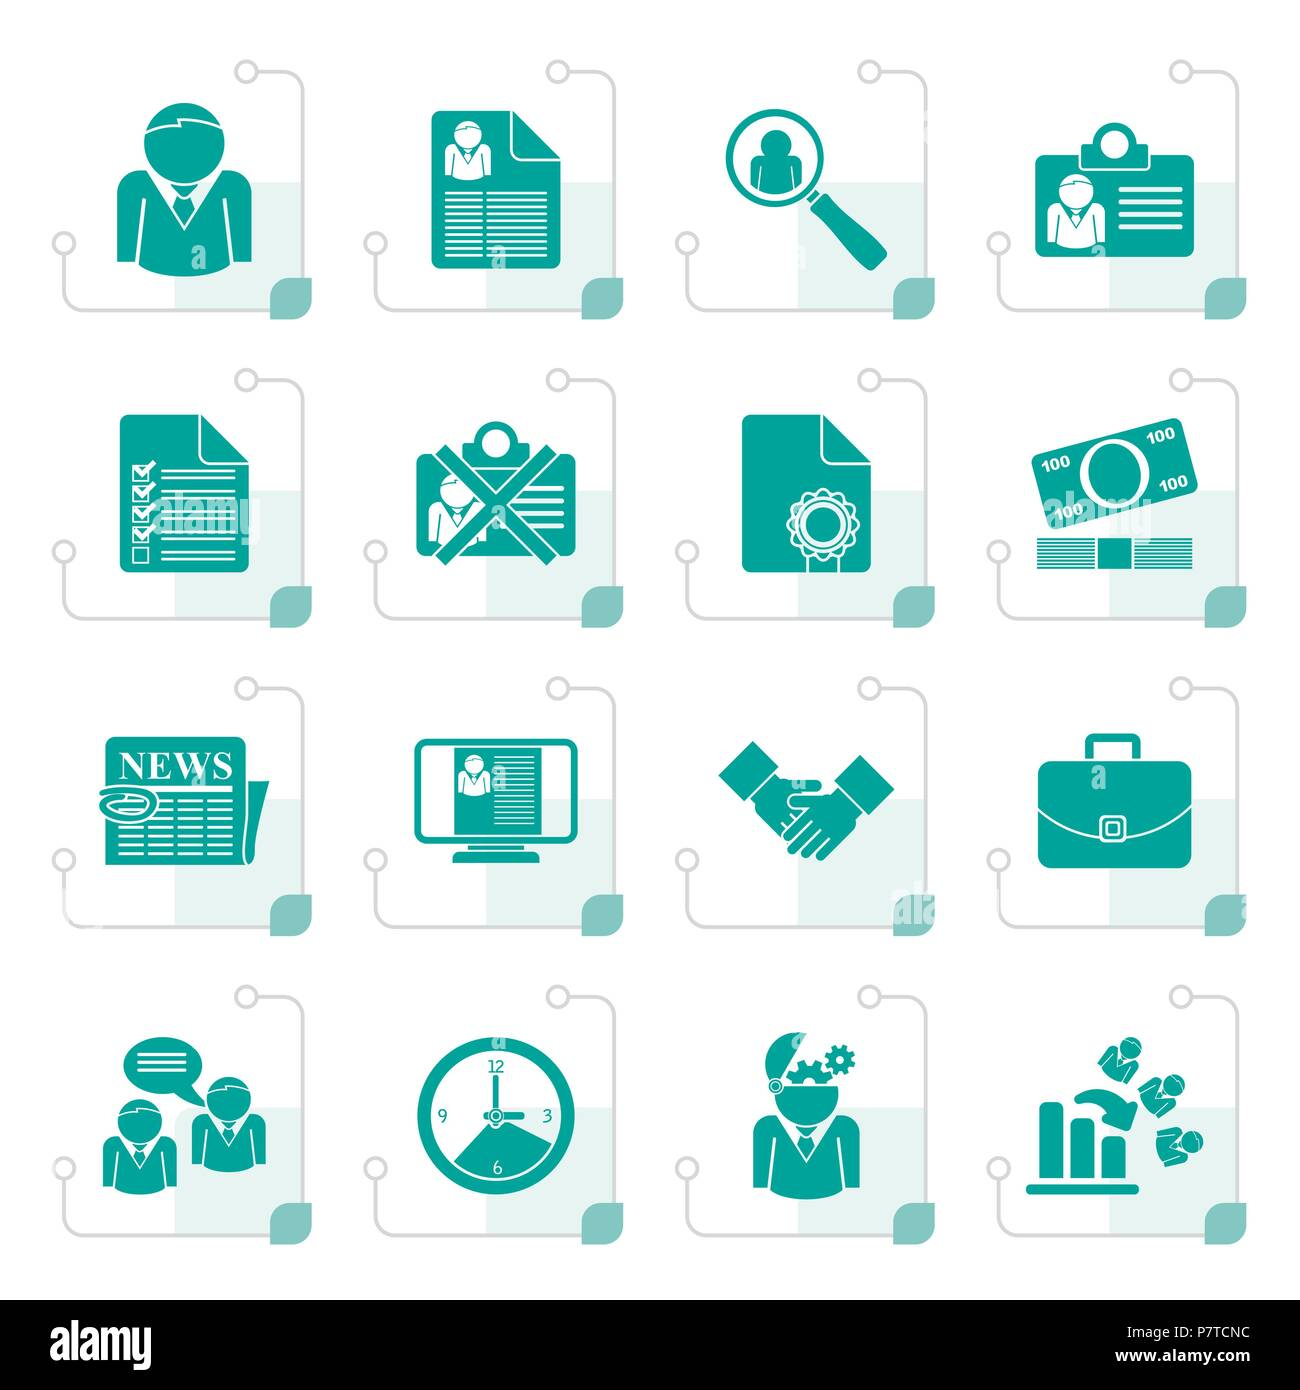 Resume Vector Icons Set Imágenes De Stock & Resume Vector Icons Set ...